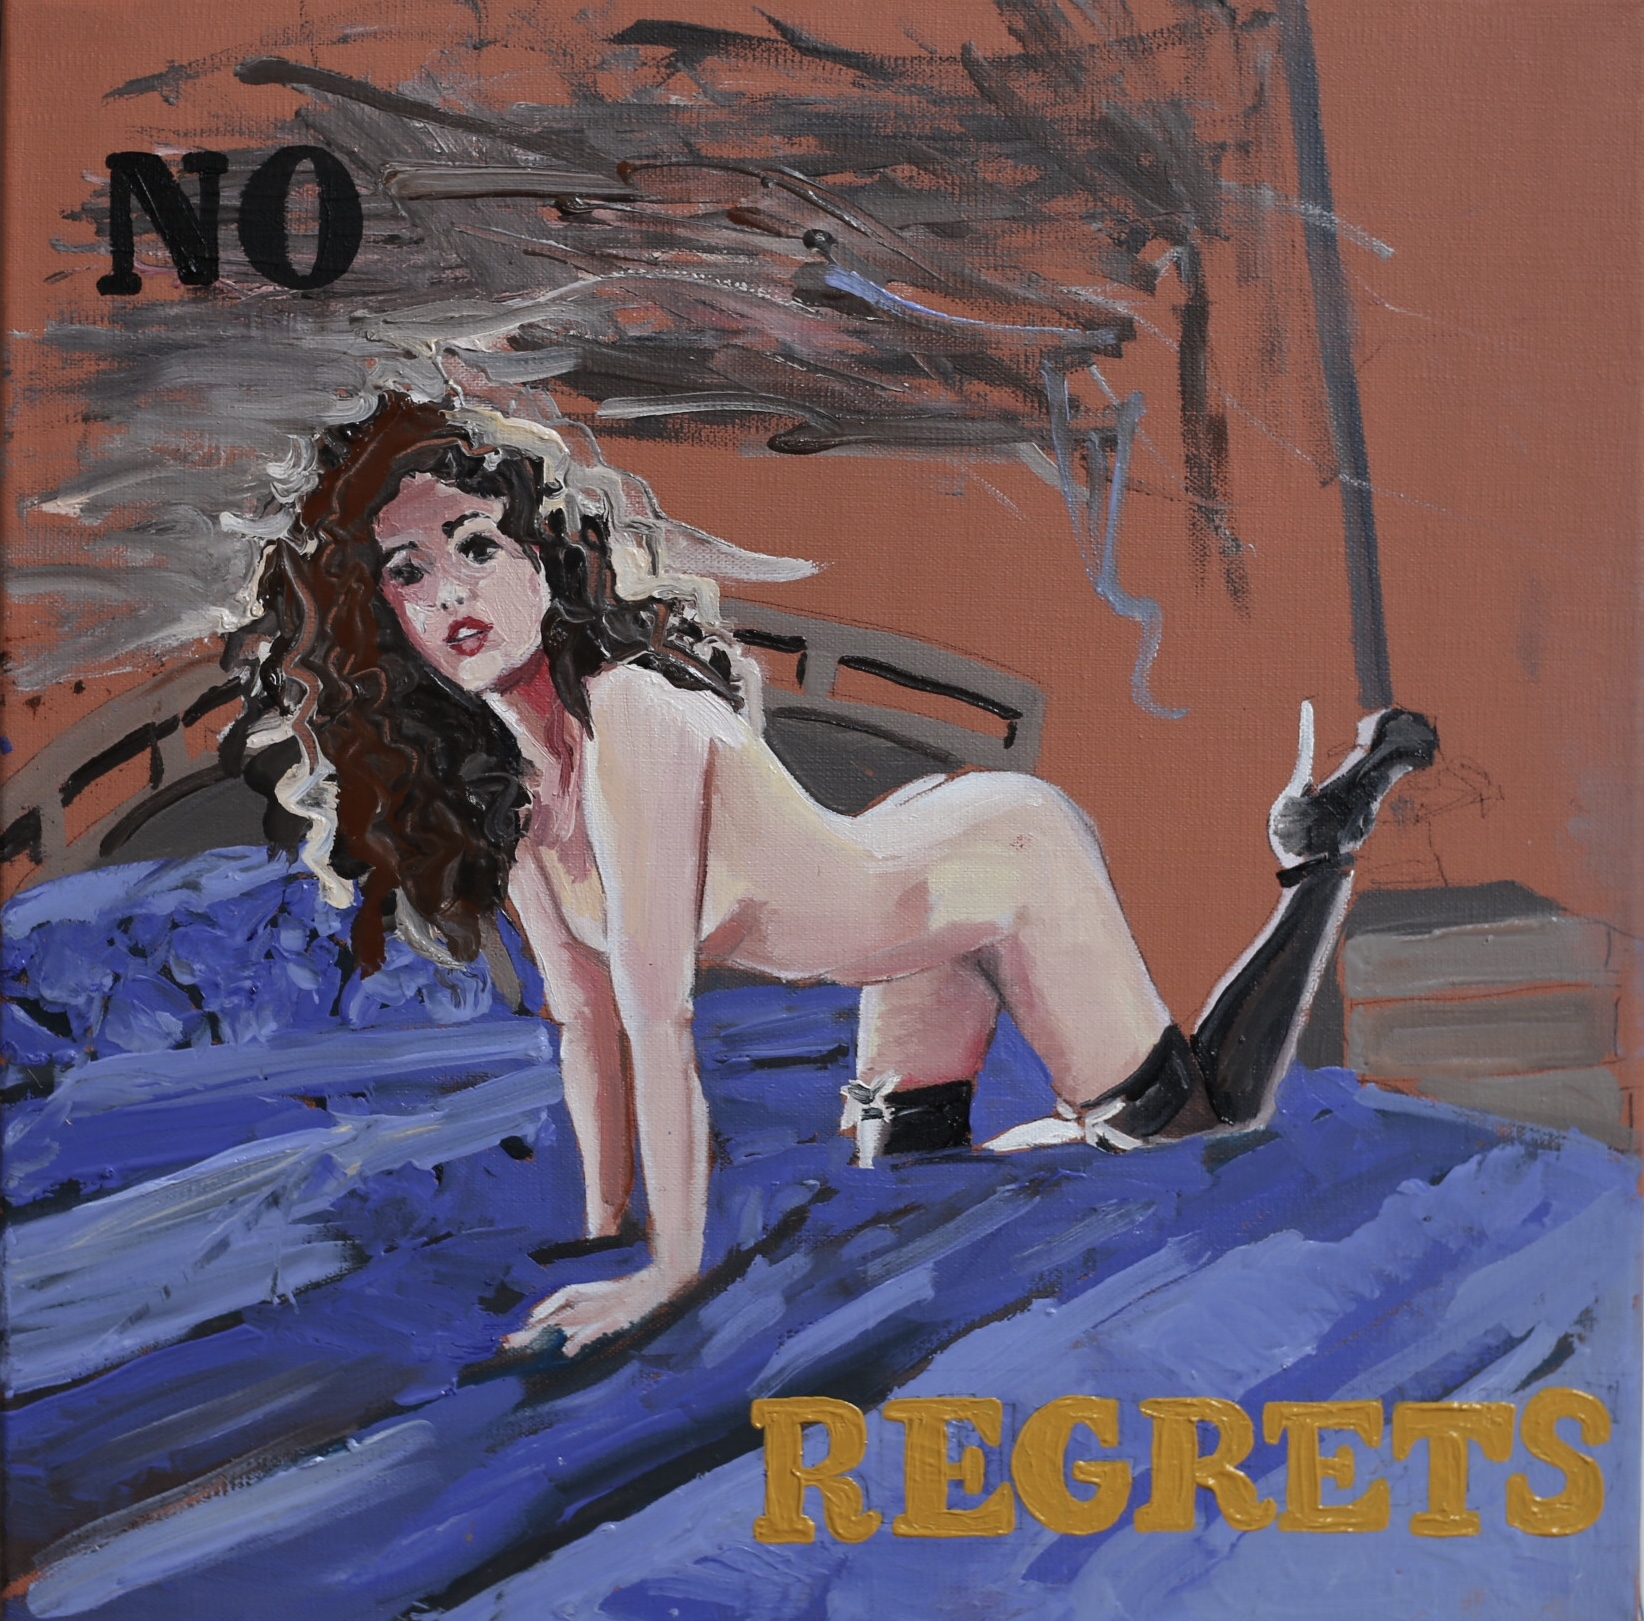 "No Regrets  12"" x 12""  Oil on Linen  ©Annika Connor"